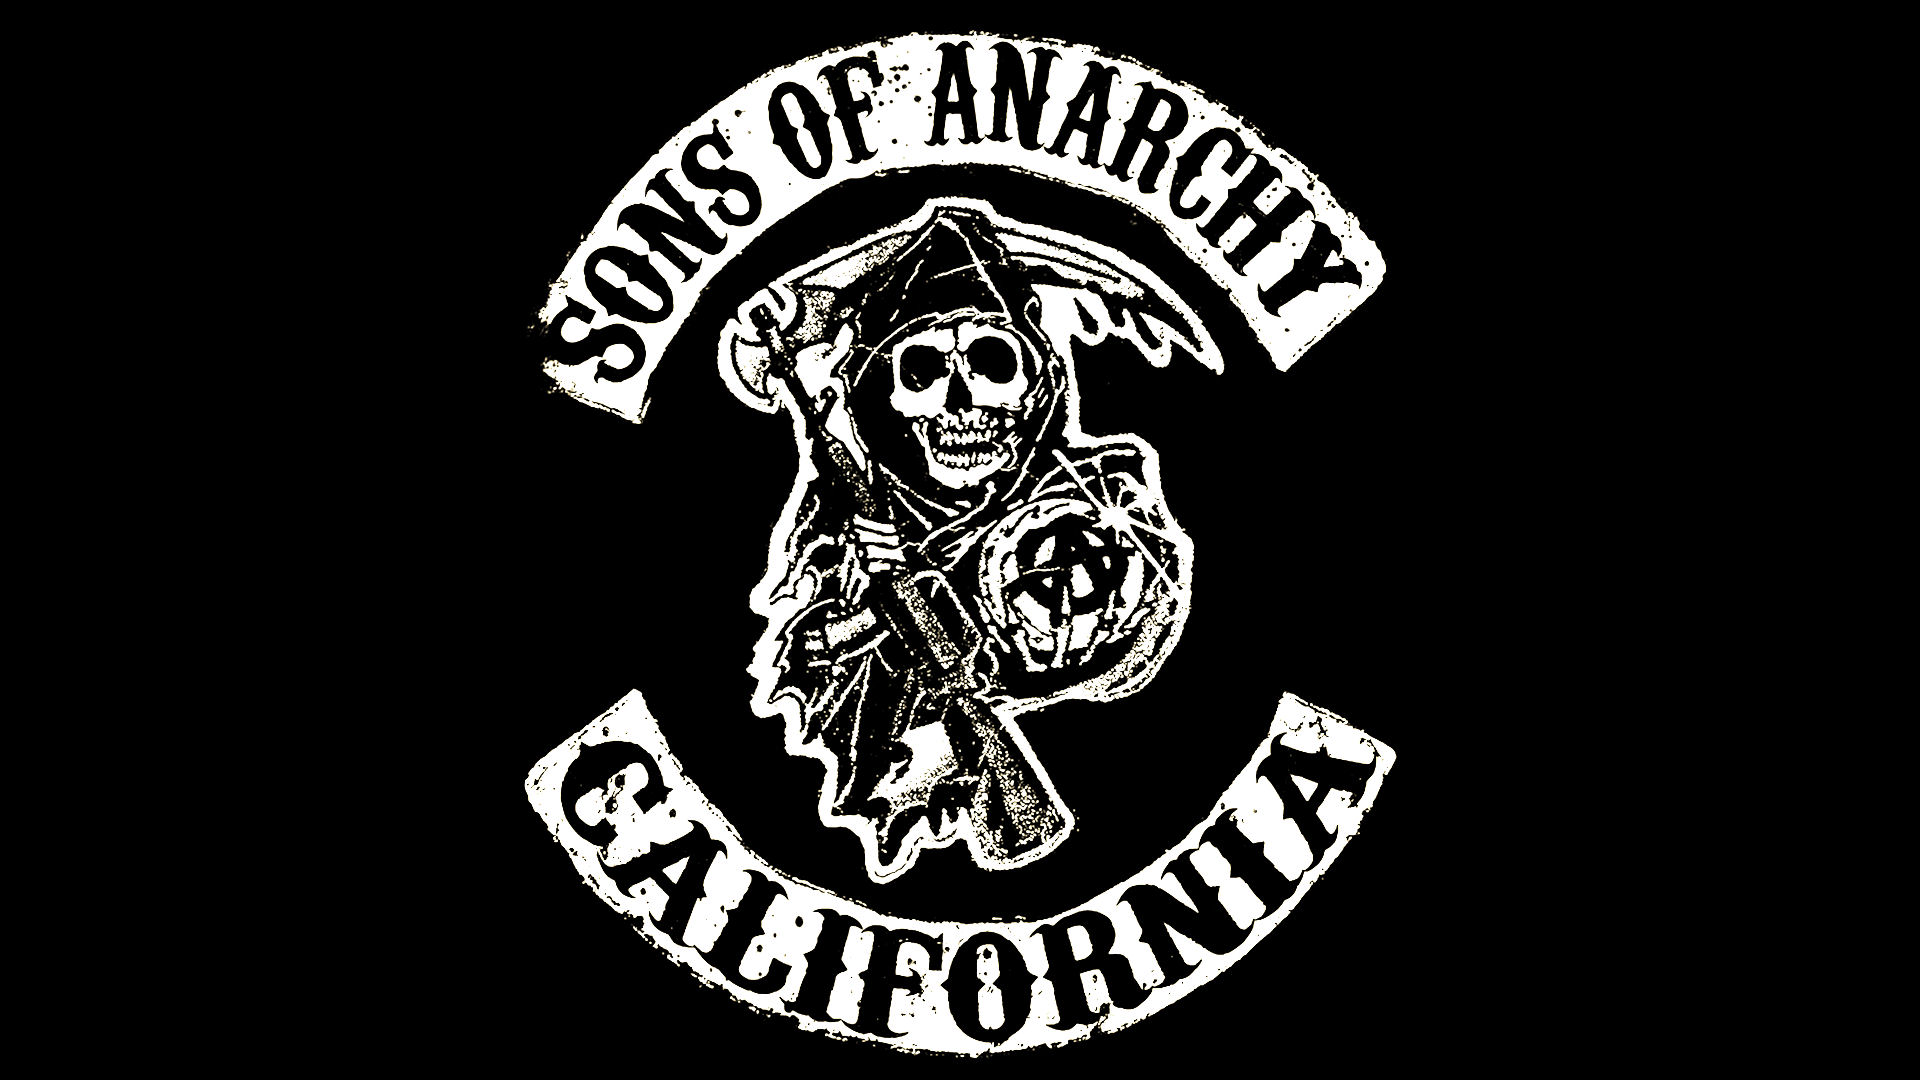 The Sons of Anarchy video game will be on tablets, not consoles